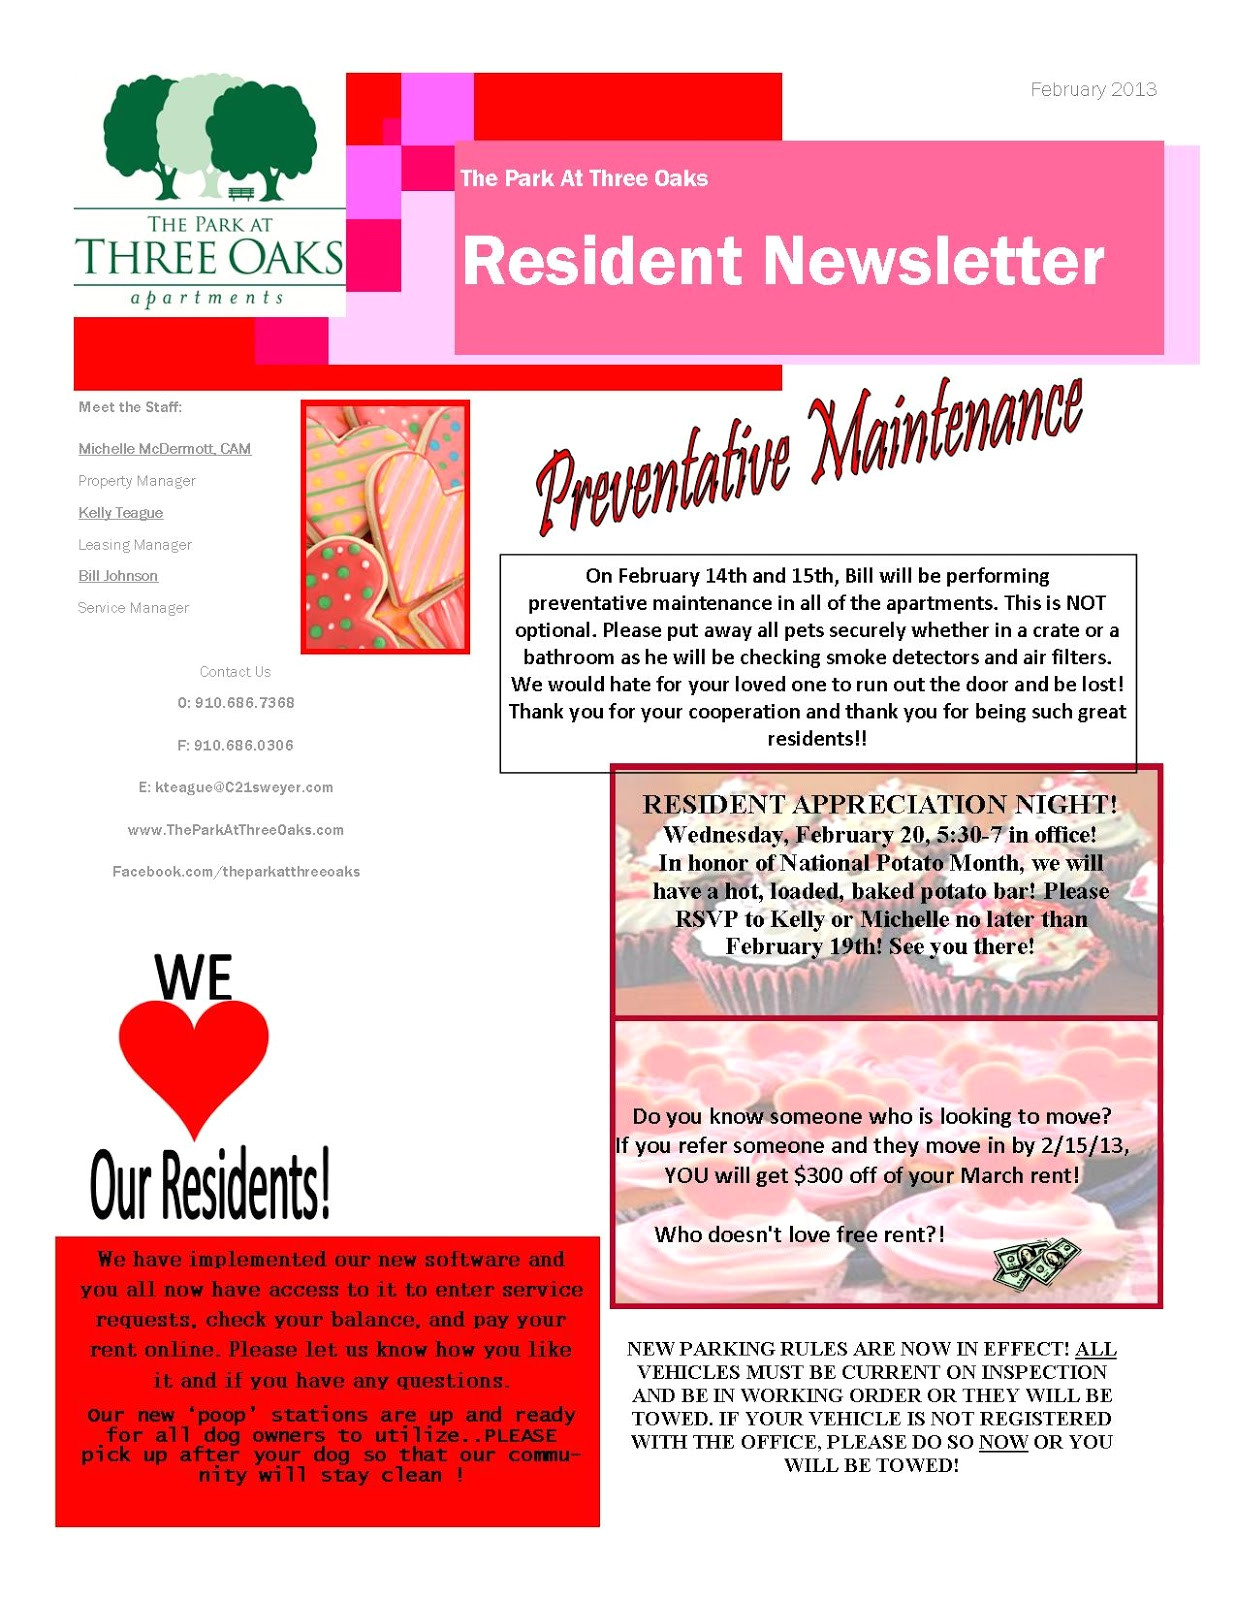 apartment newsletter ideas